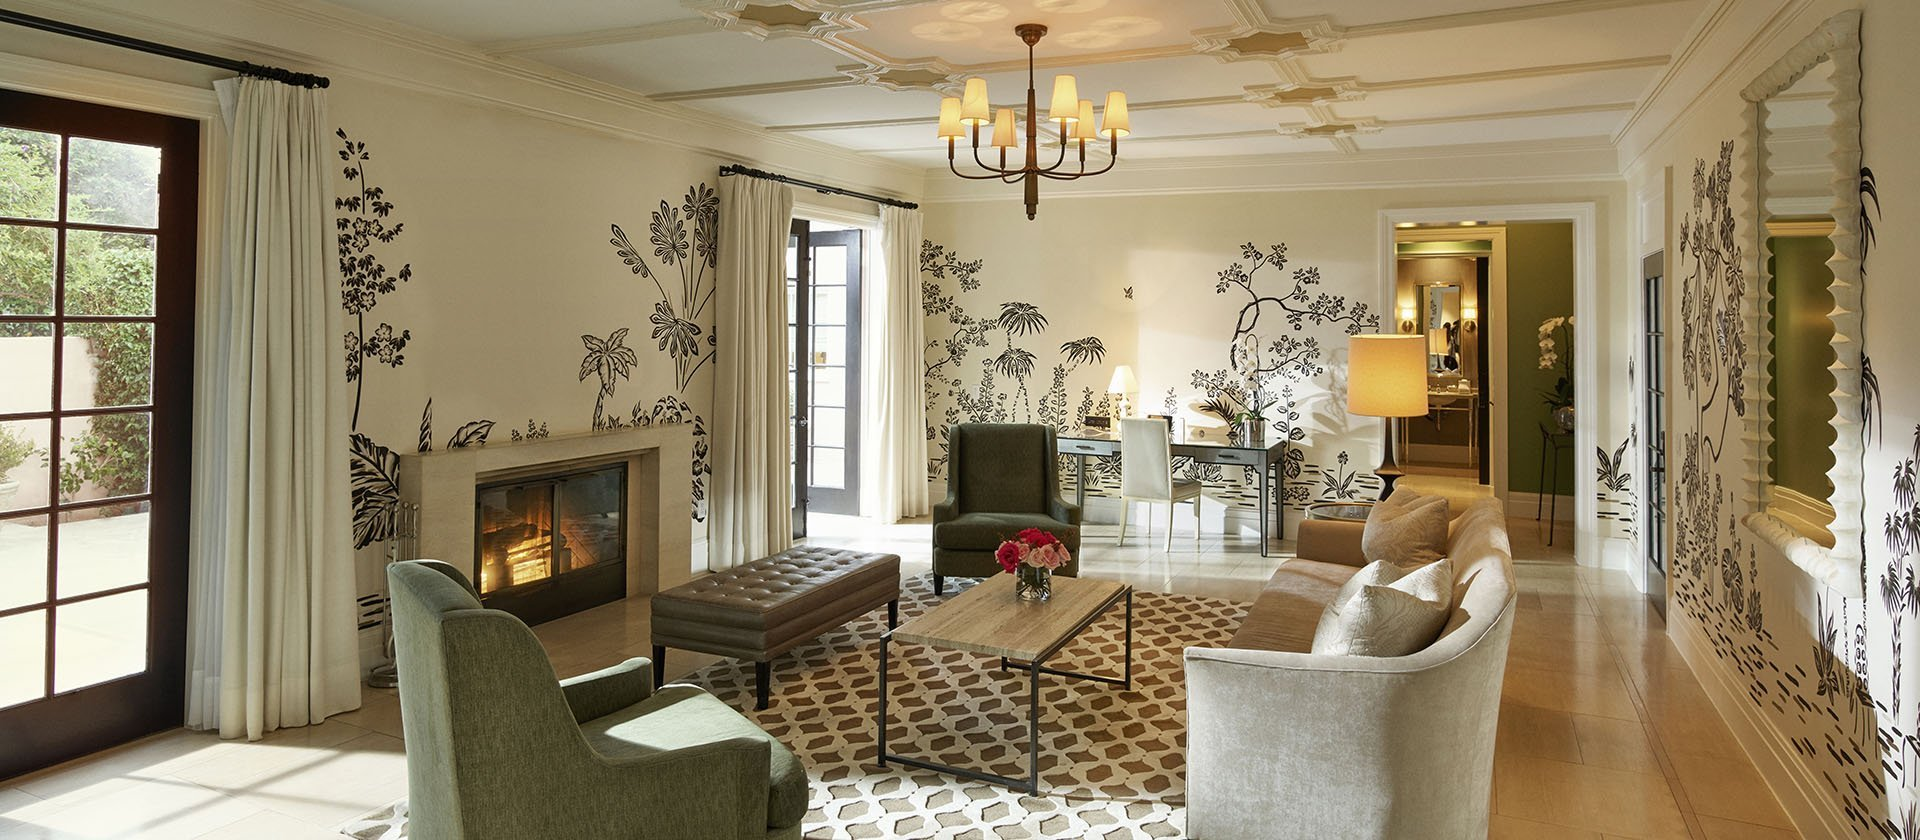 Spa Chalons En Champagne chalon suite at hotel bel-air | dorchester collection